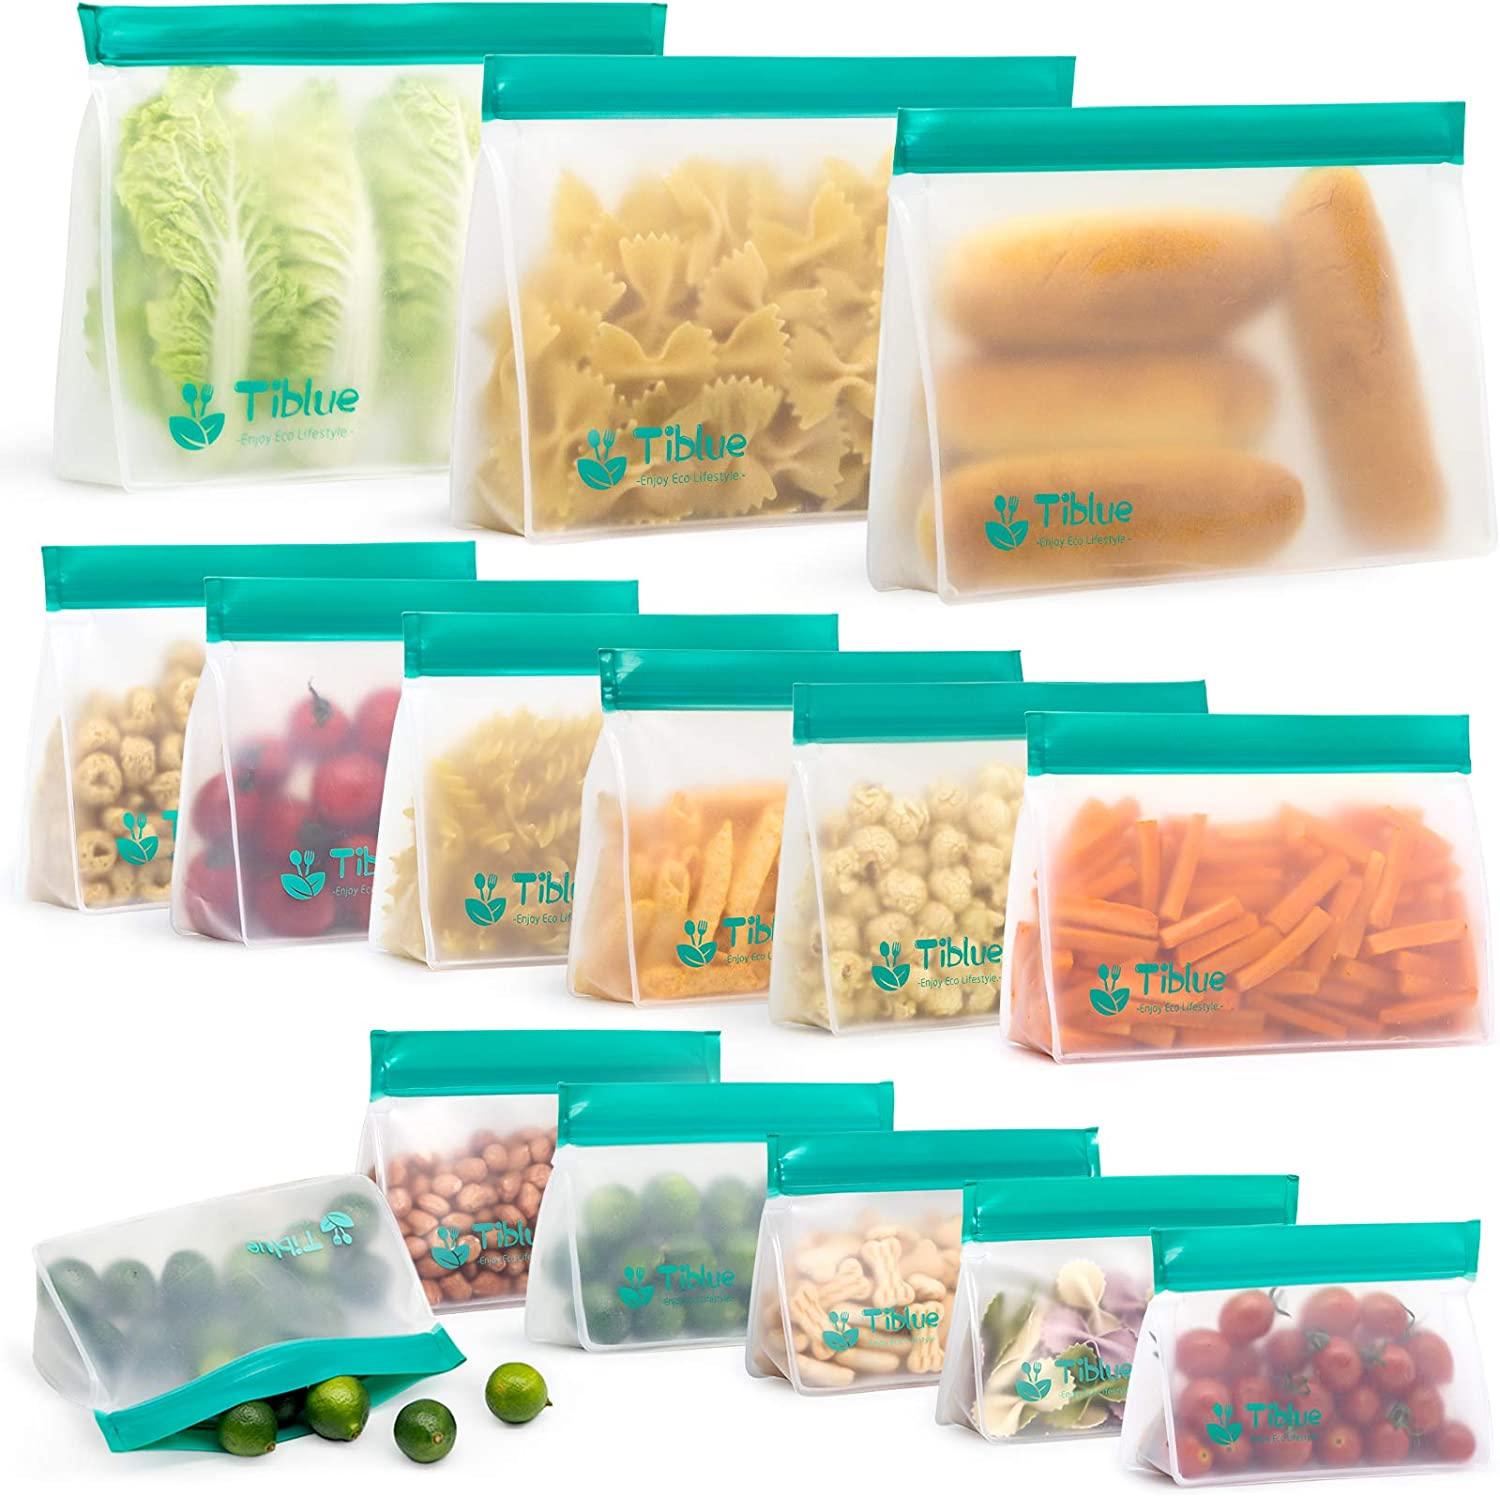 Reusable Food Storage Bags - 10 PCS BPA FREE Freezer Bags(2 Gallon Bags + 4 Reusable Sandwich Bags + 4 Reusable Snack Bags) LEAKPROOF Reusable Lunch Ziplock Bags for Food Travel Make-up Home (Green)